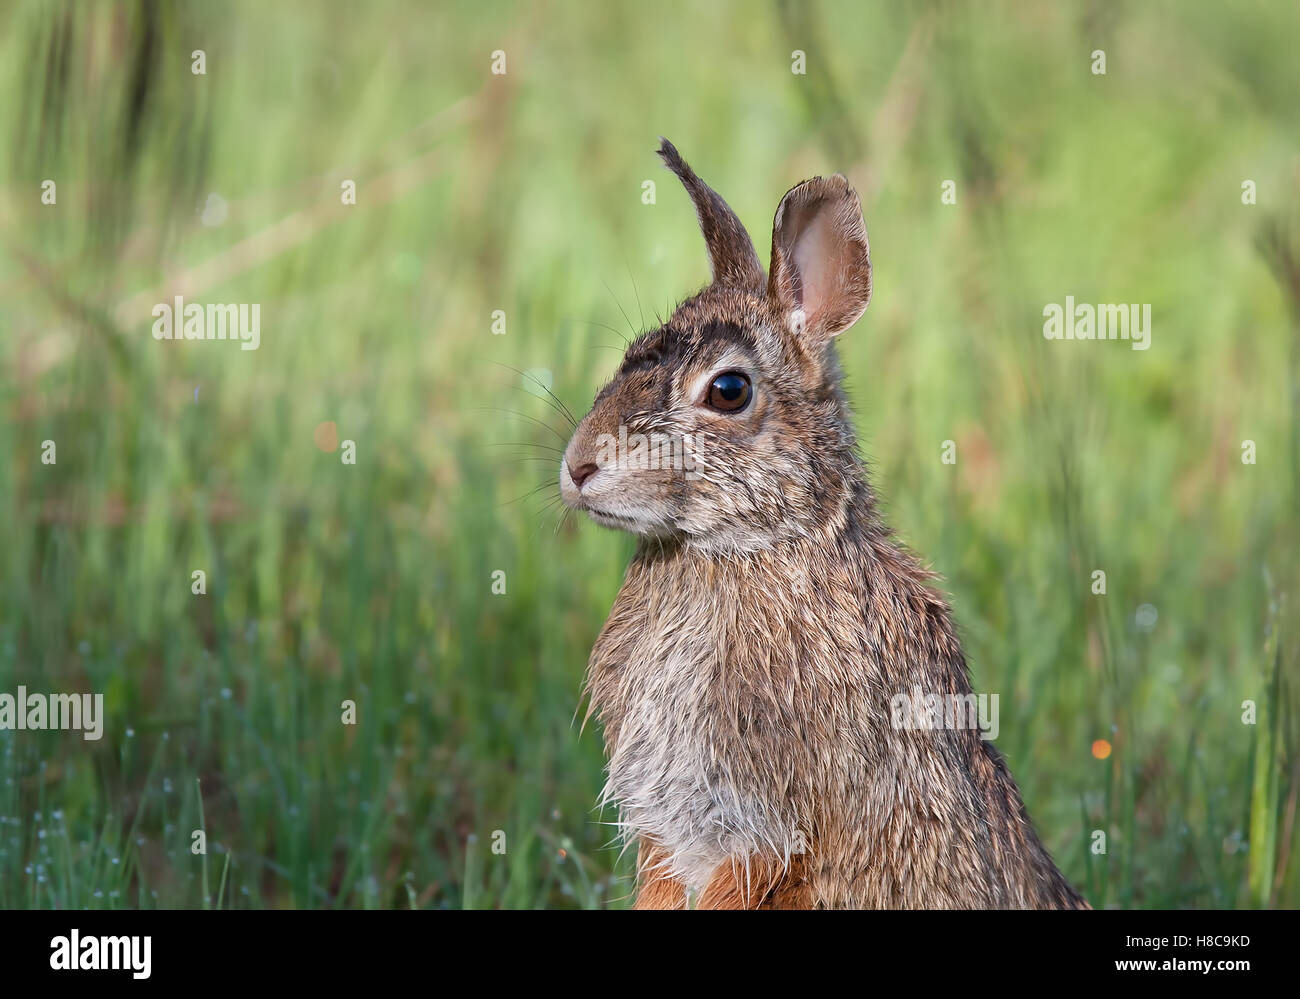 Rabbit standing in a spring meadow in Canada - Stock Image